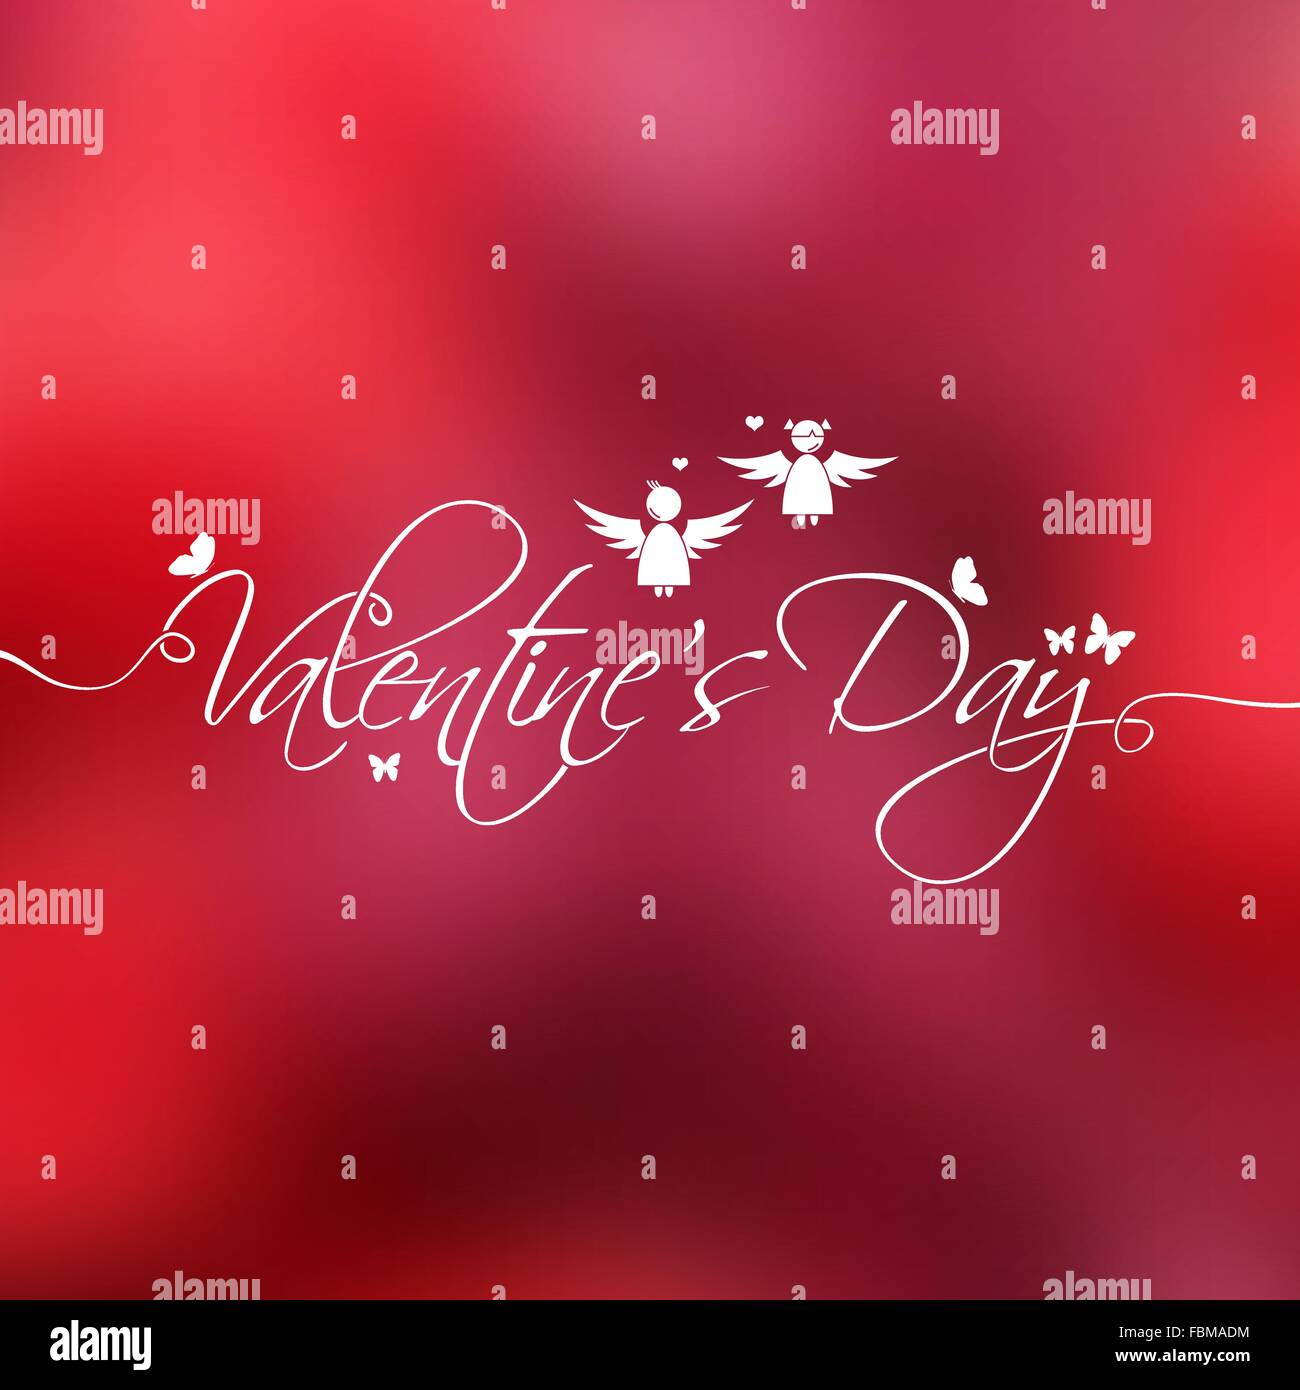 Valentine's Day hand lettering on blurred background for your design - Stock Vector